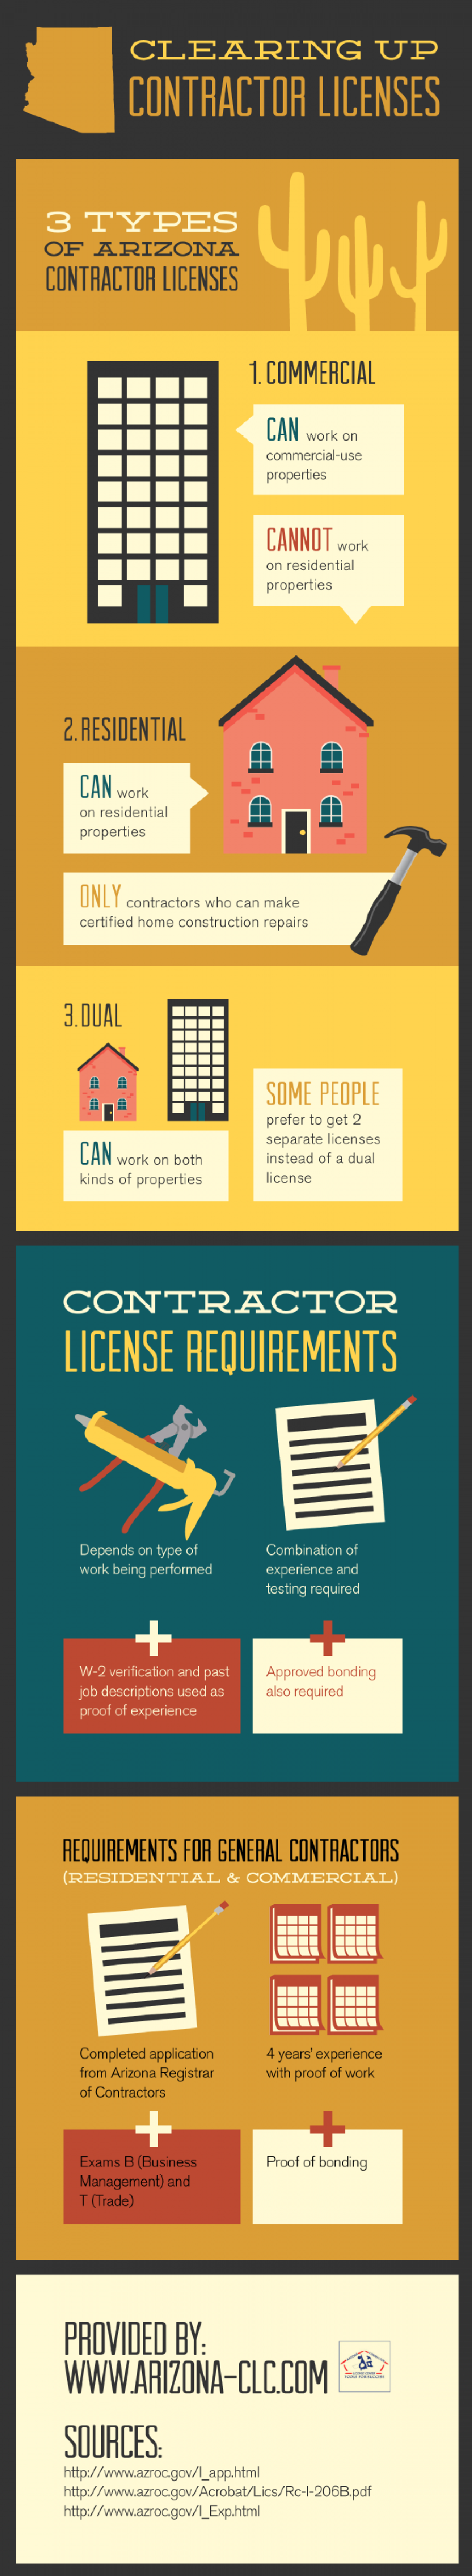 Clearing Up Contractor Licenses Infographic